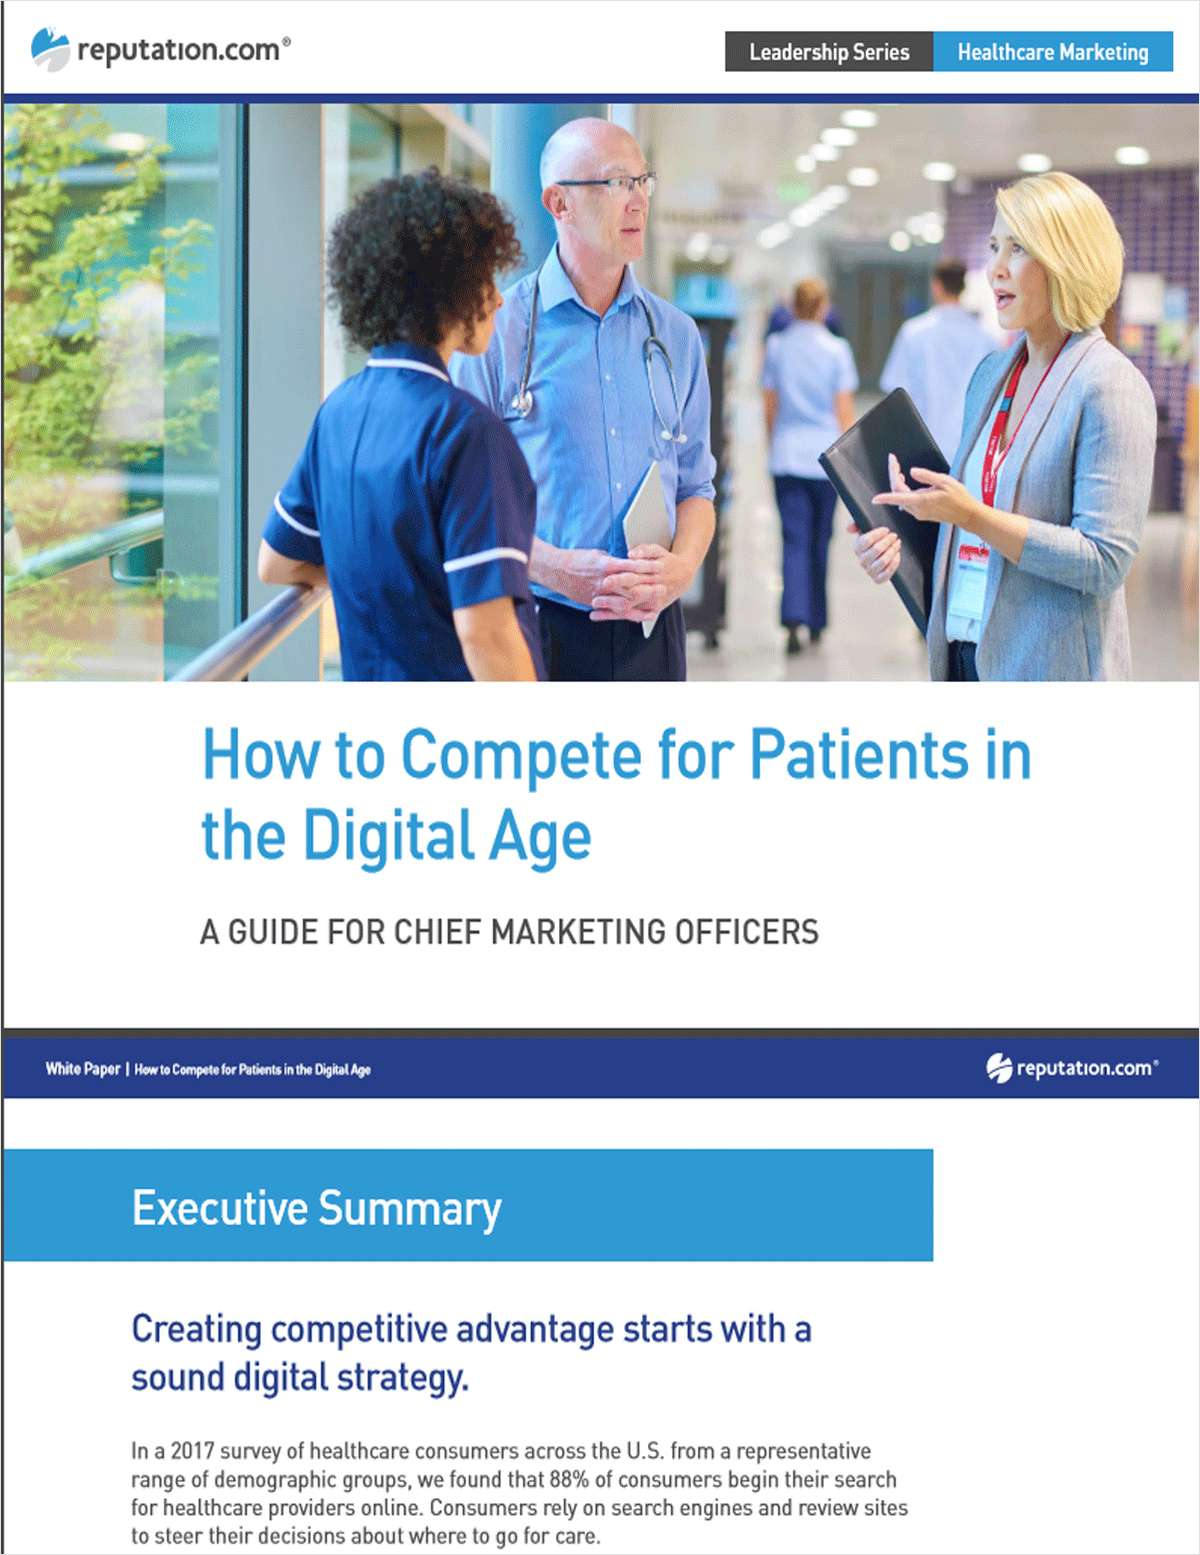 How to Compete for Patients in the Digital Age, Free